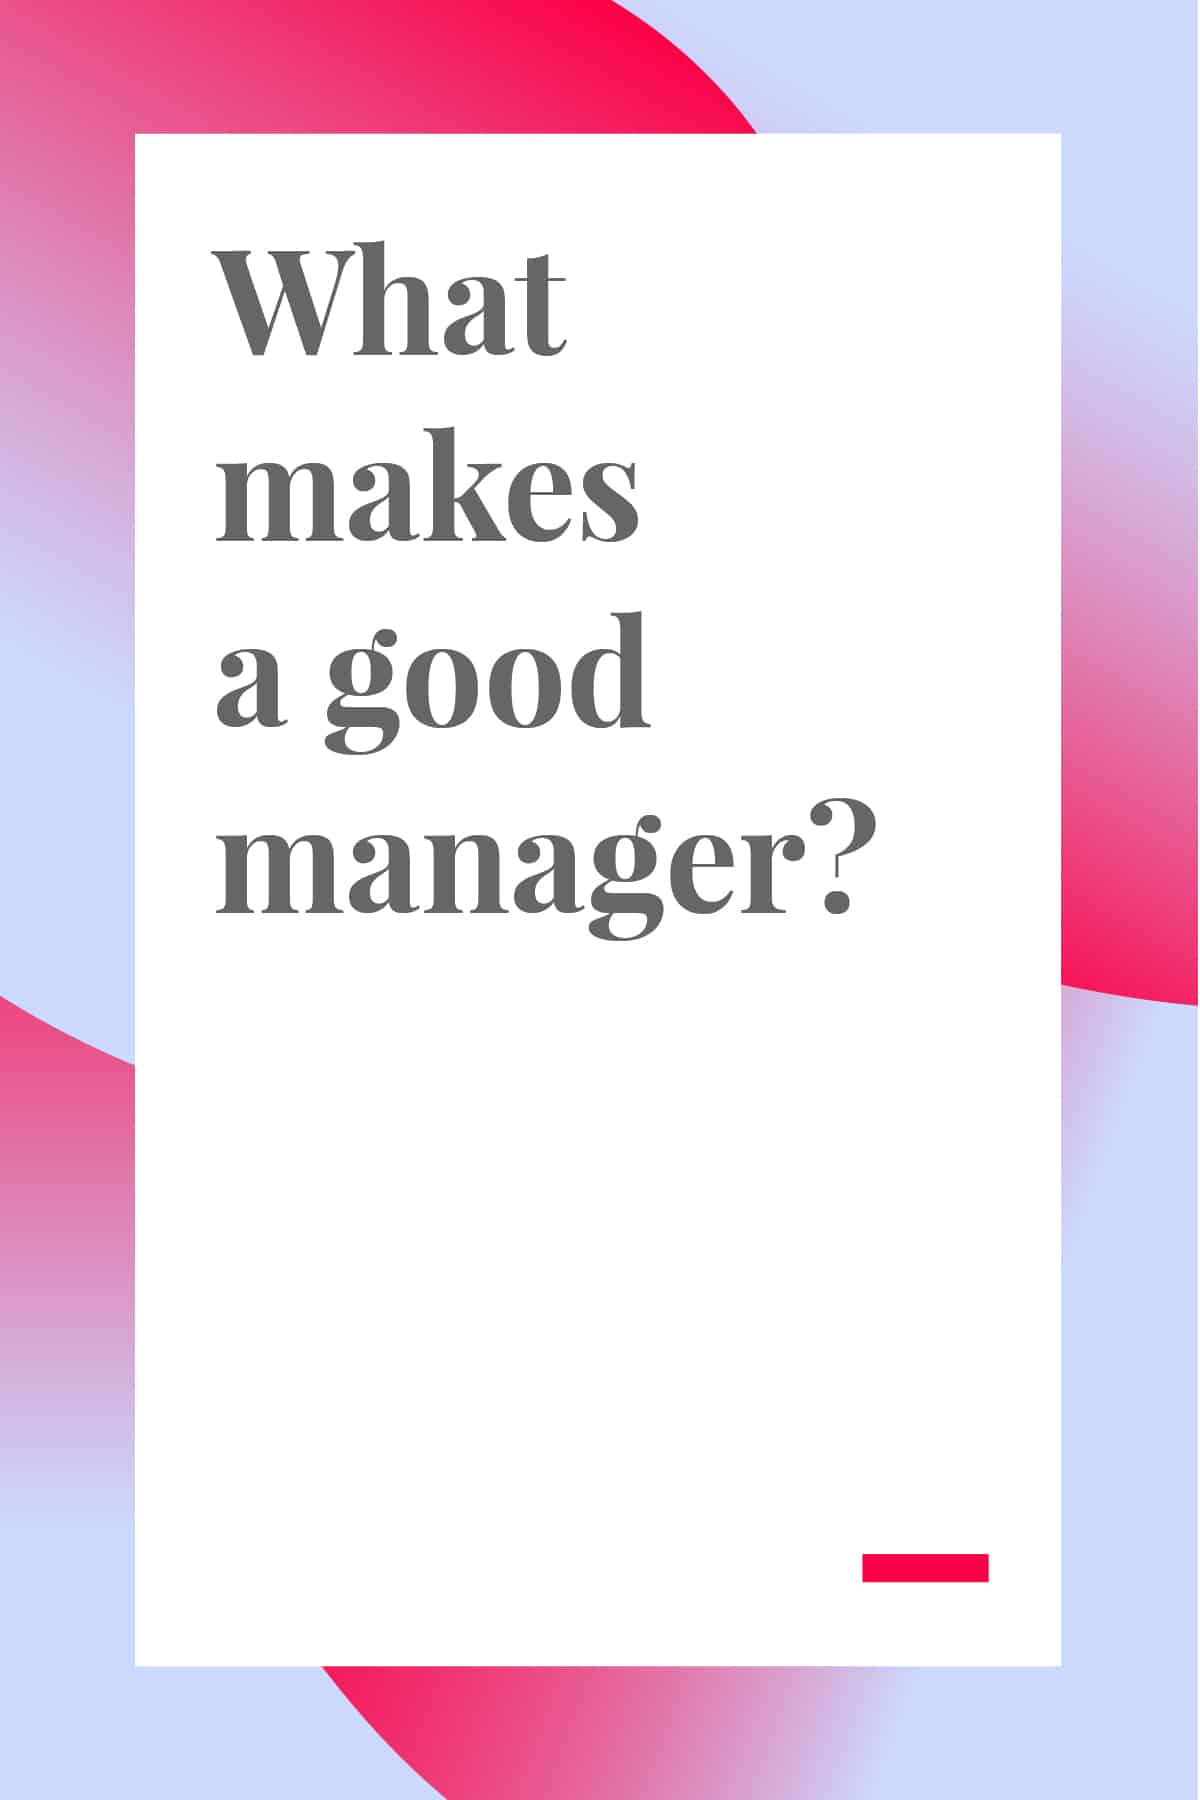 Wondering what it takes to be a good manager? These tips and tricks will help you stand out and lead a team to get results. #leadership #teammangement